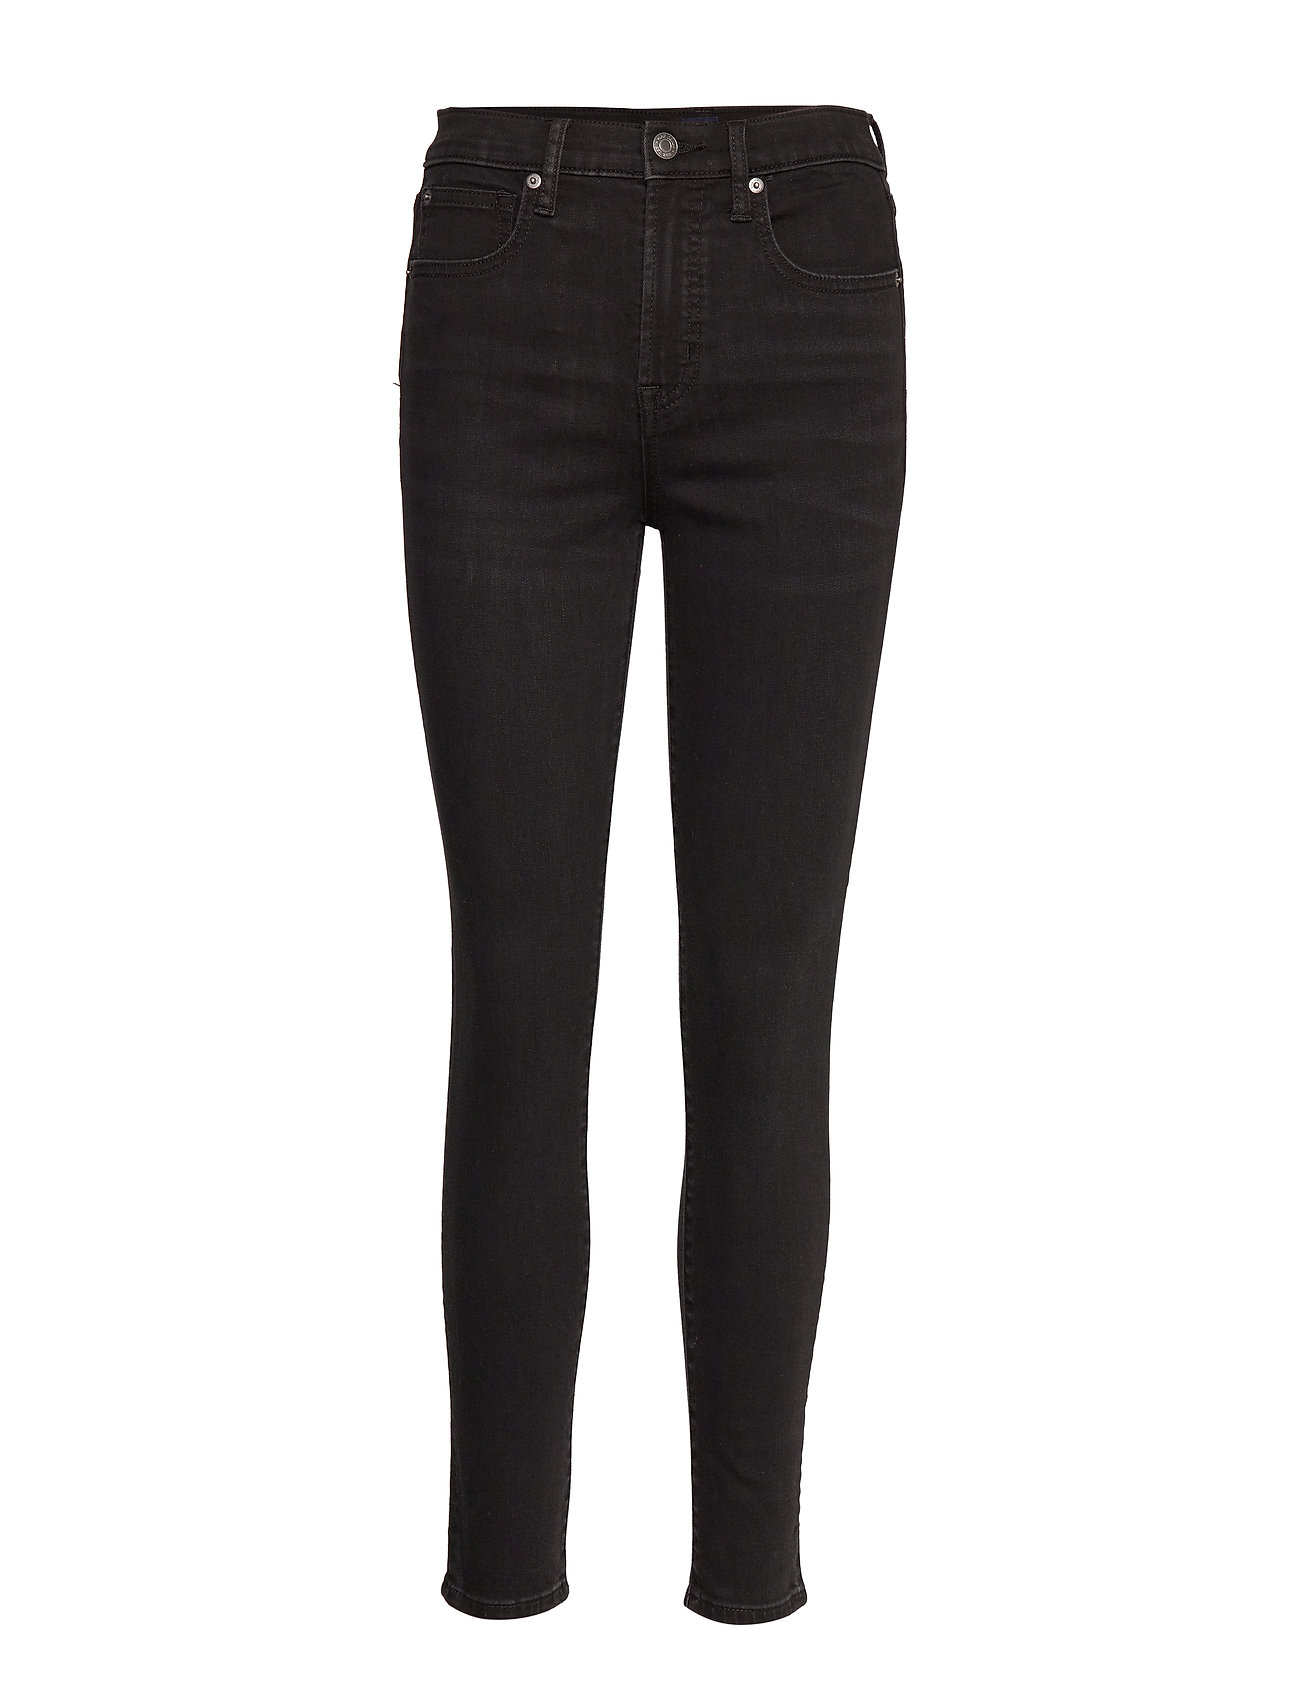 GAP High Rise True Skinny Jeans with Secret Smoothing Pockets - TRUE BLACK V2